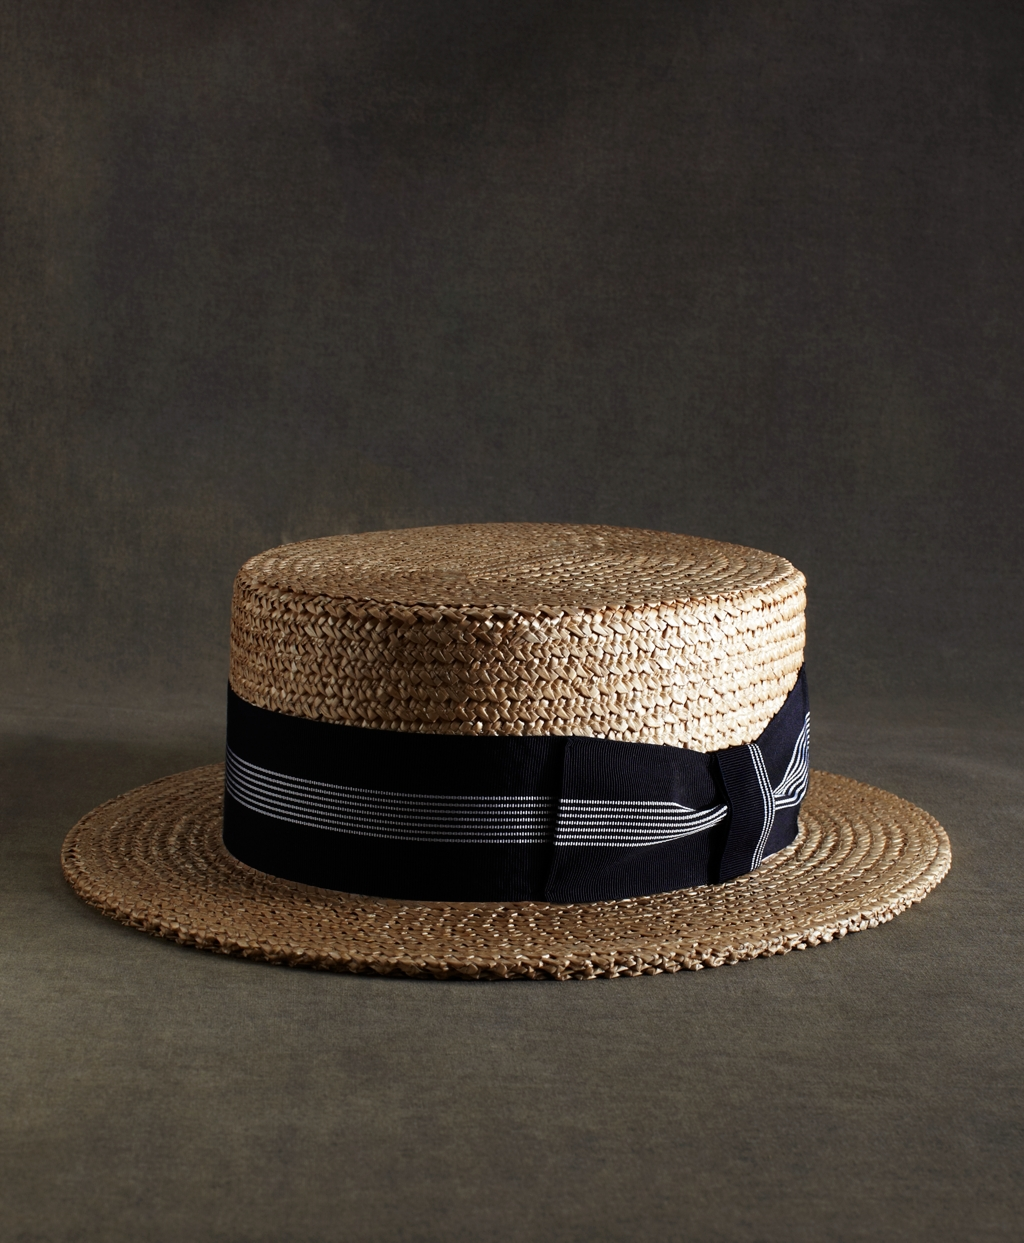 Lyst - Brooks Brothers The Great Gatsby Collection Straw Boater Hat ... ff6868a49d4